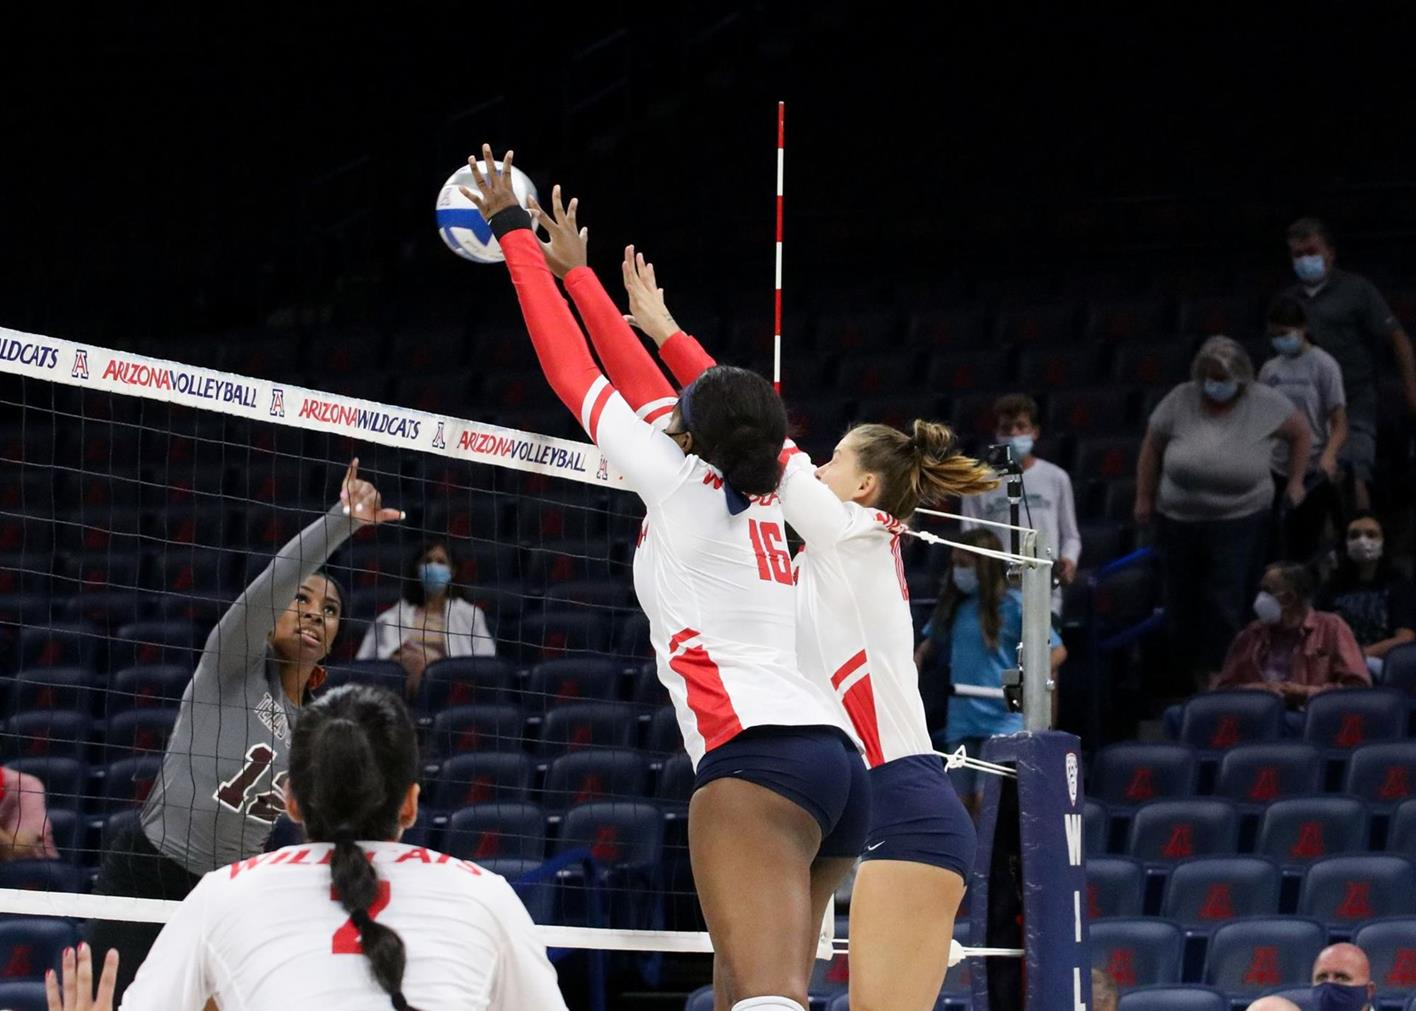 Tigers Downed By Arizona In Wildcat Classic Finale